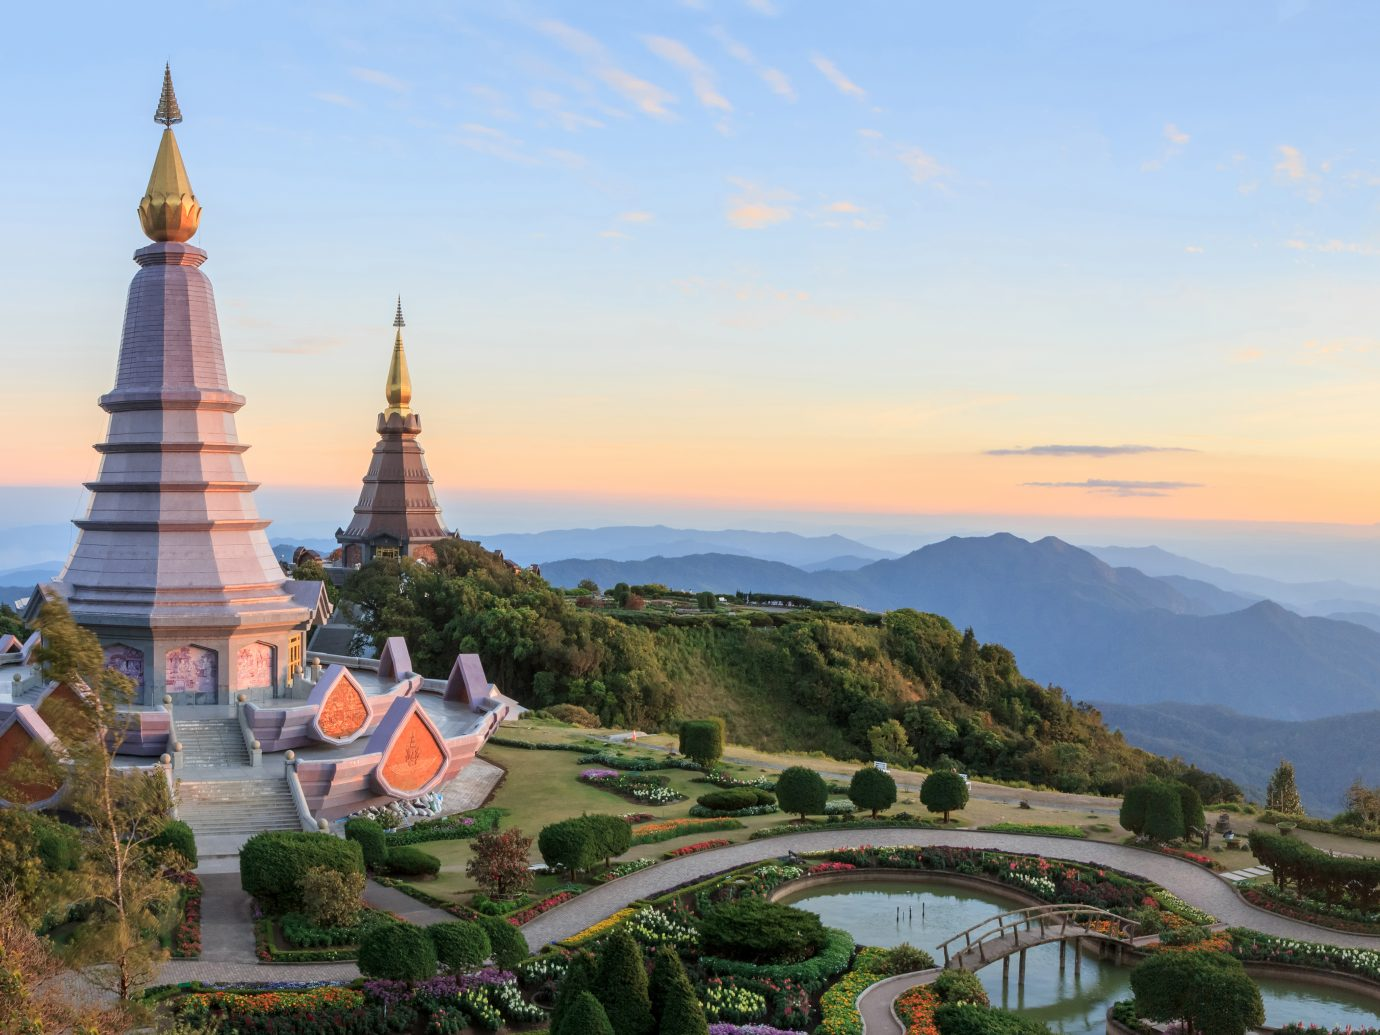 Beautiful sunset at two pagoda Doi Inthanon National Park, Chiang mai, Thailand.